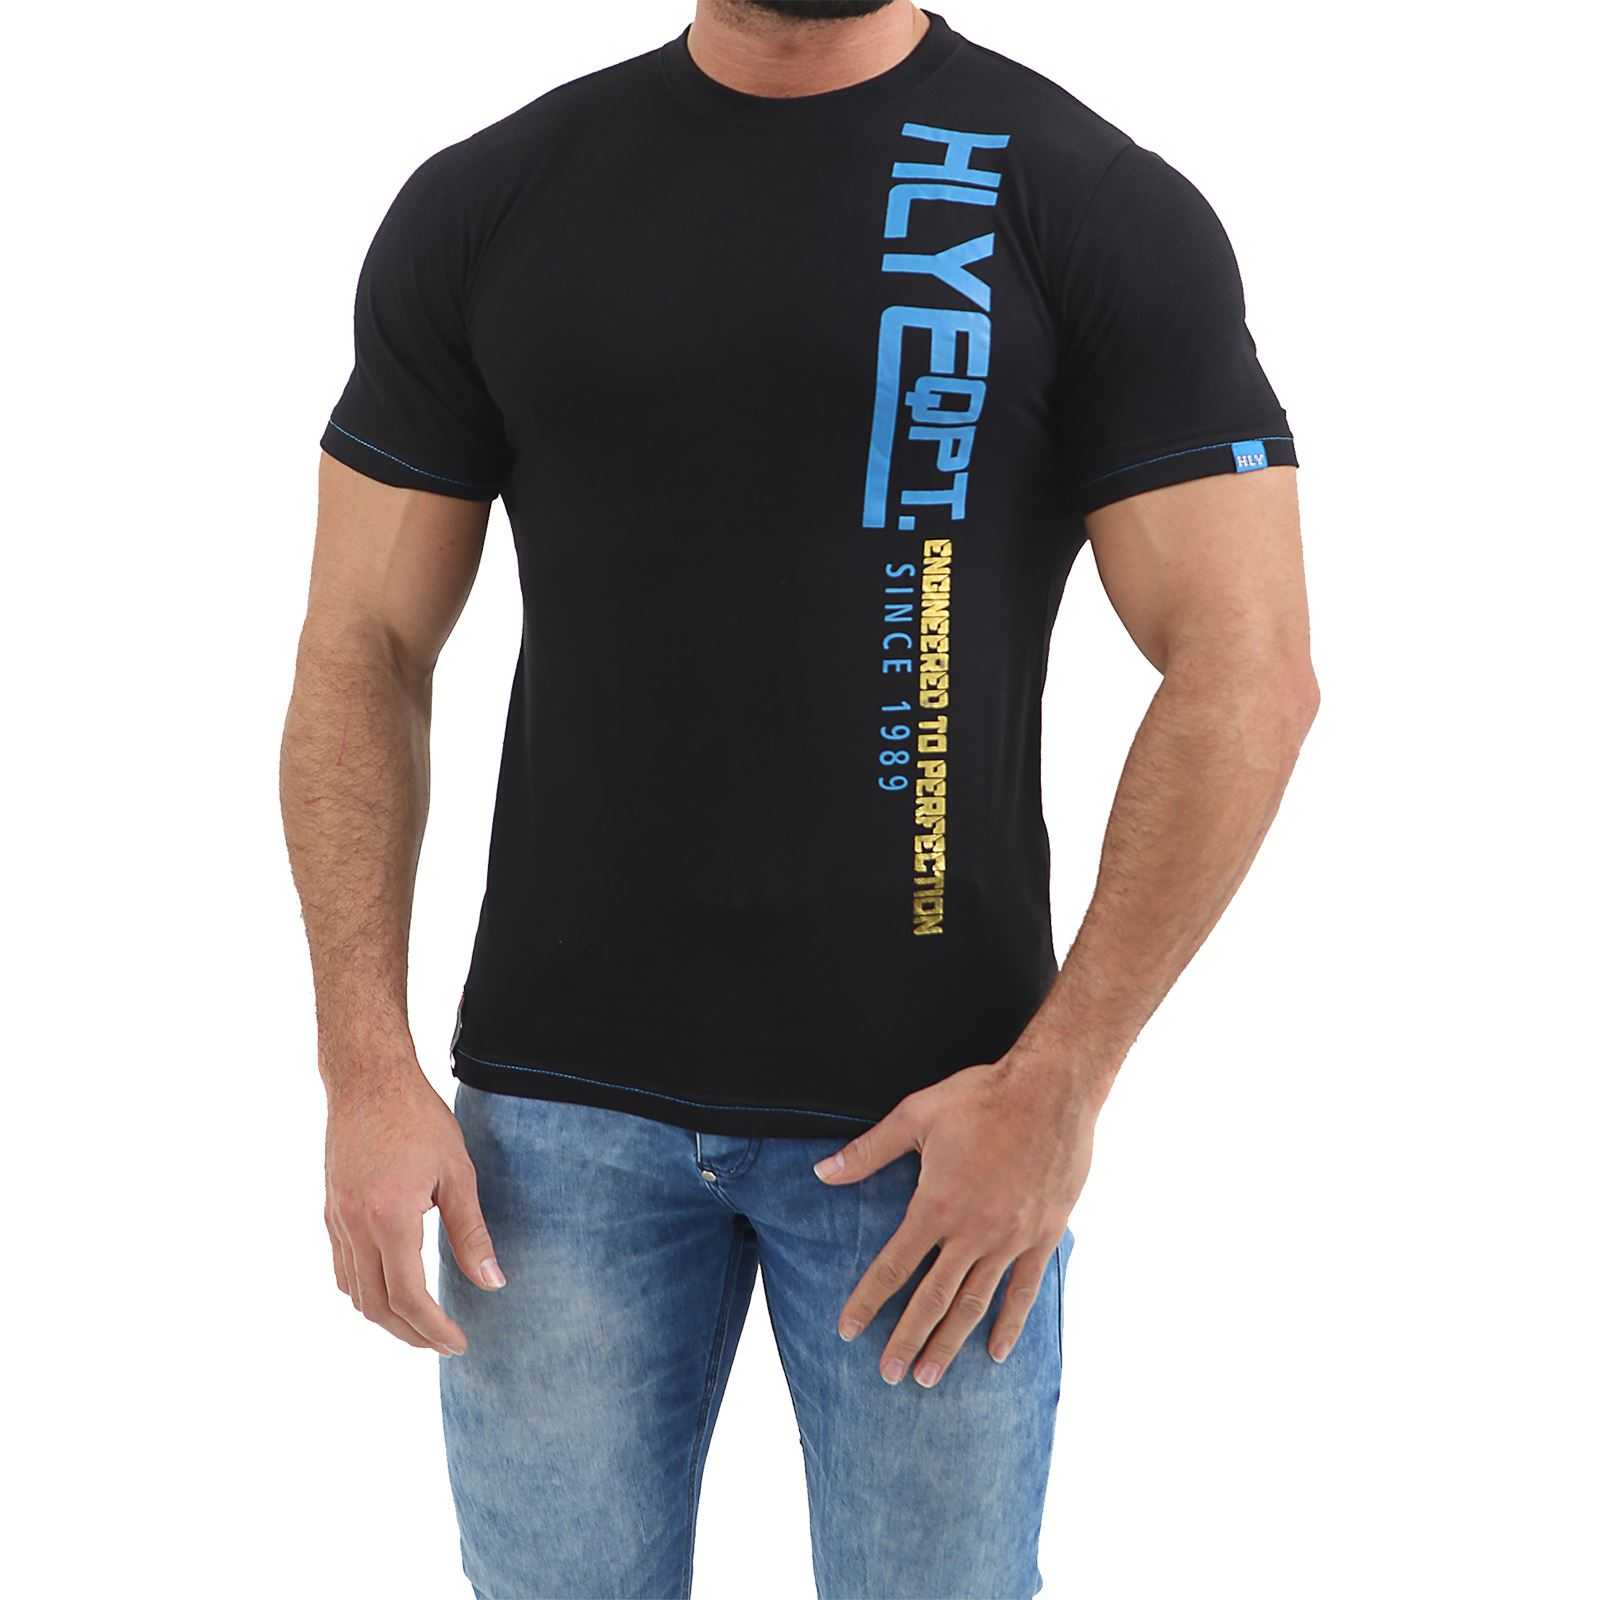 Mens-HLY-Printed-T-Shirt-100-Cotton-Gym-Athletic-Training-Tee-Top-Summer-New thumbnail 3